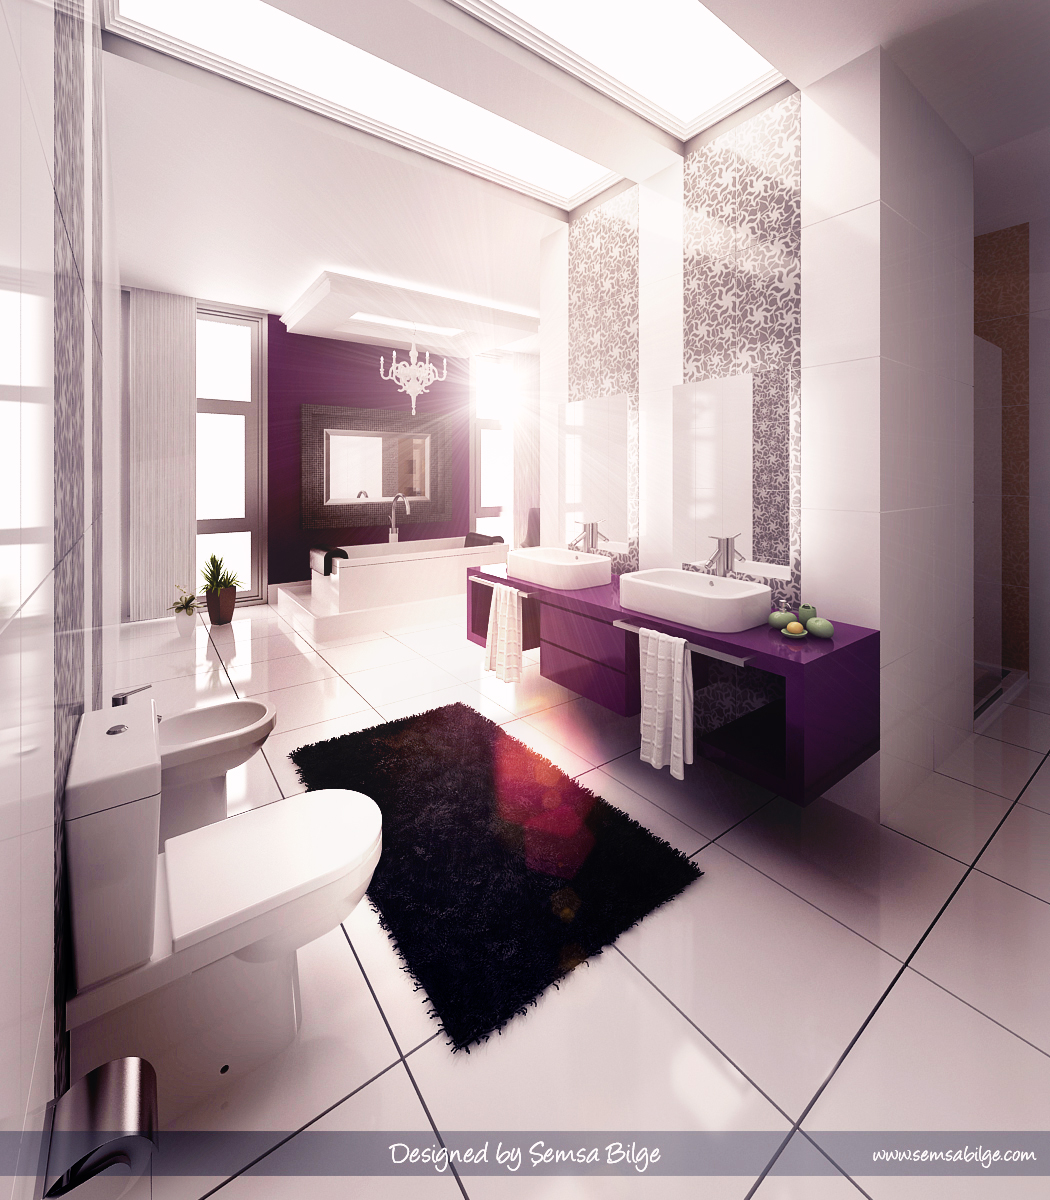 Beautiful bathroom designs ideas interior design for Bathroom ideas images